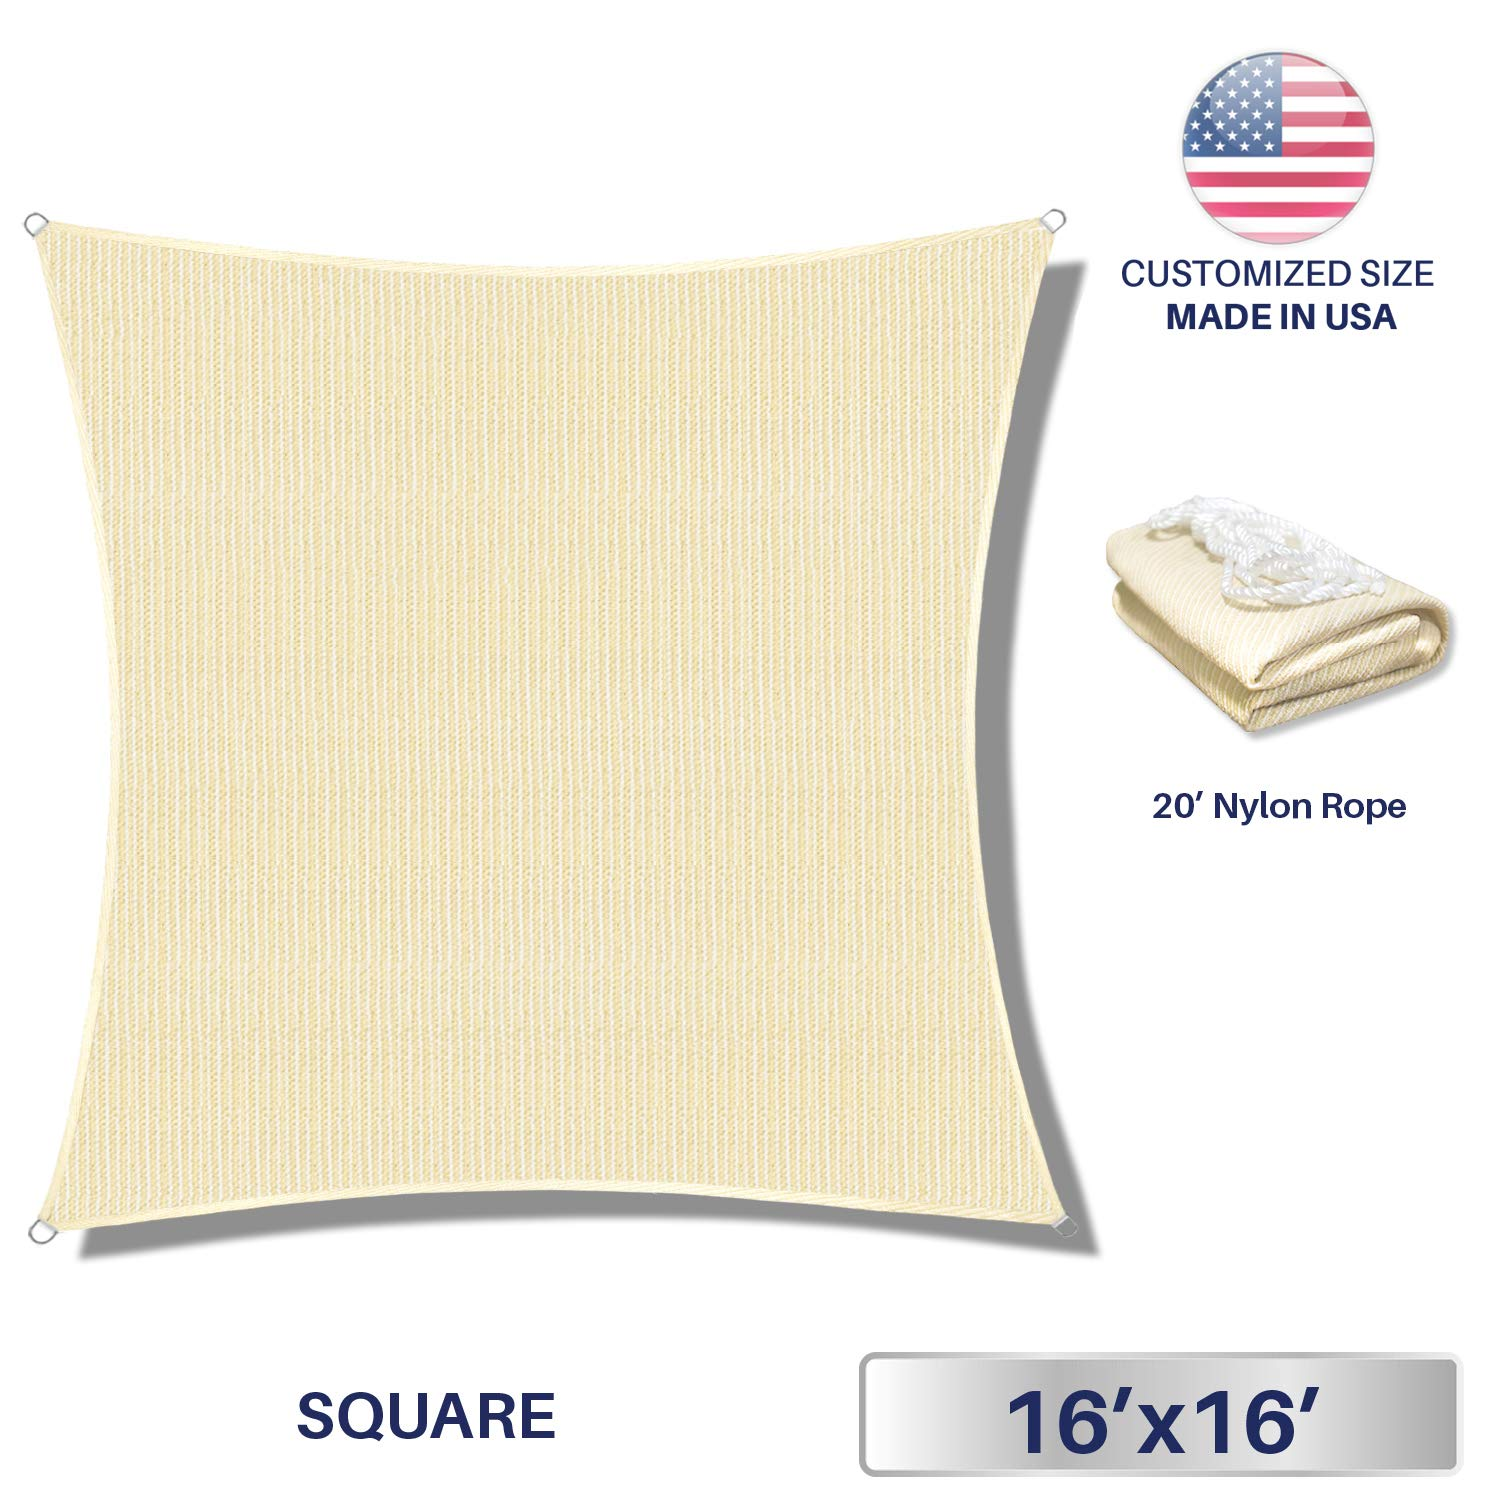 Windscreen4less 16' x 16' Sun Shade Sail Square Canopy in Beige with Commercial Grade (3 Year Warranty) Customized